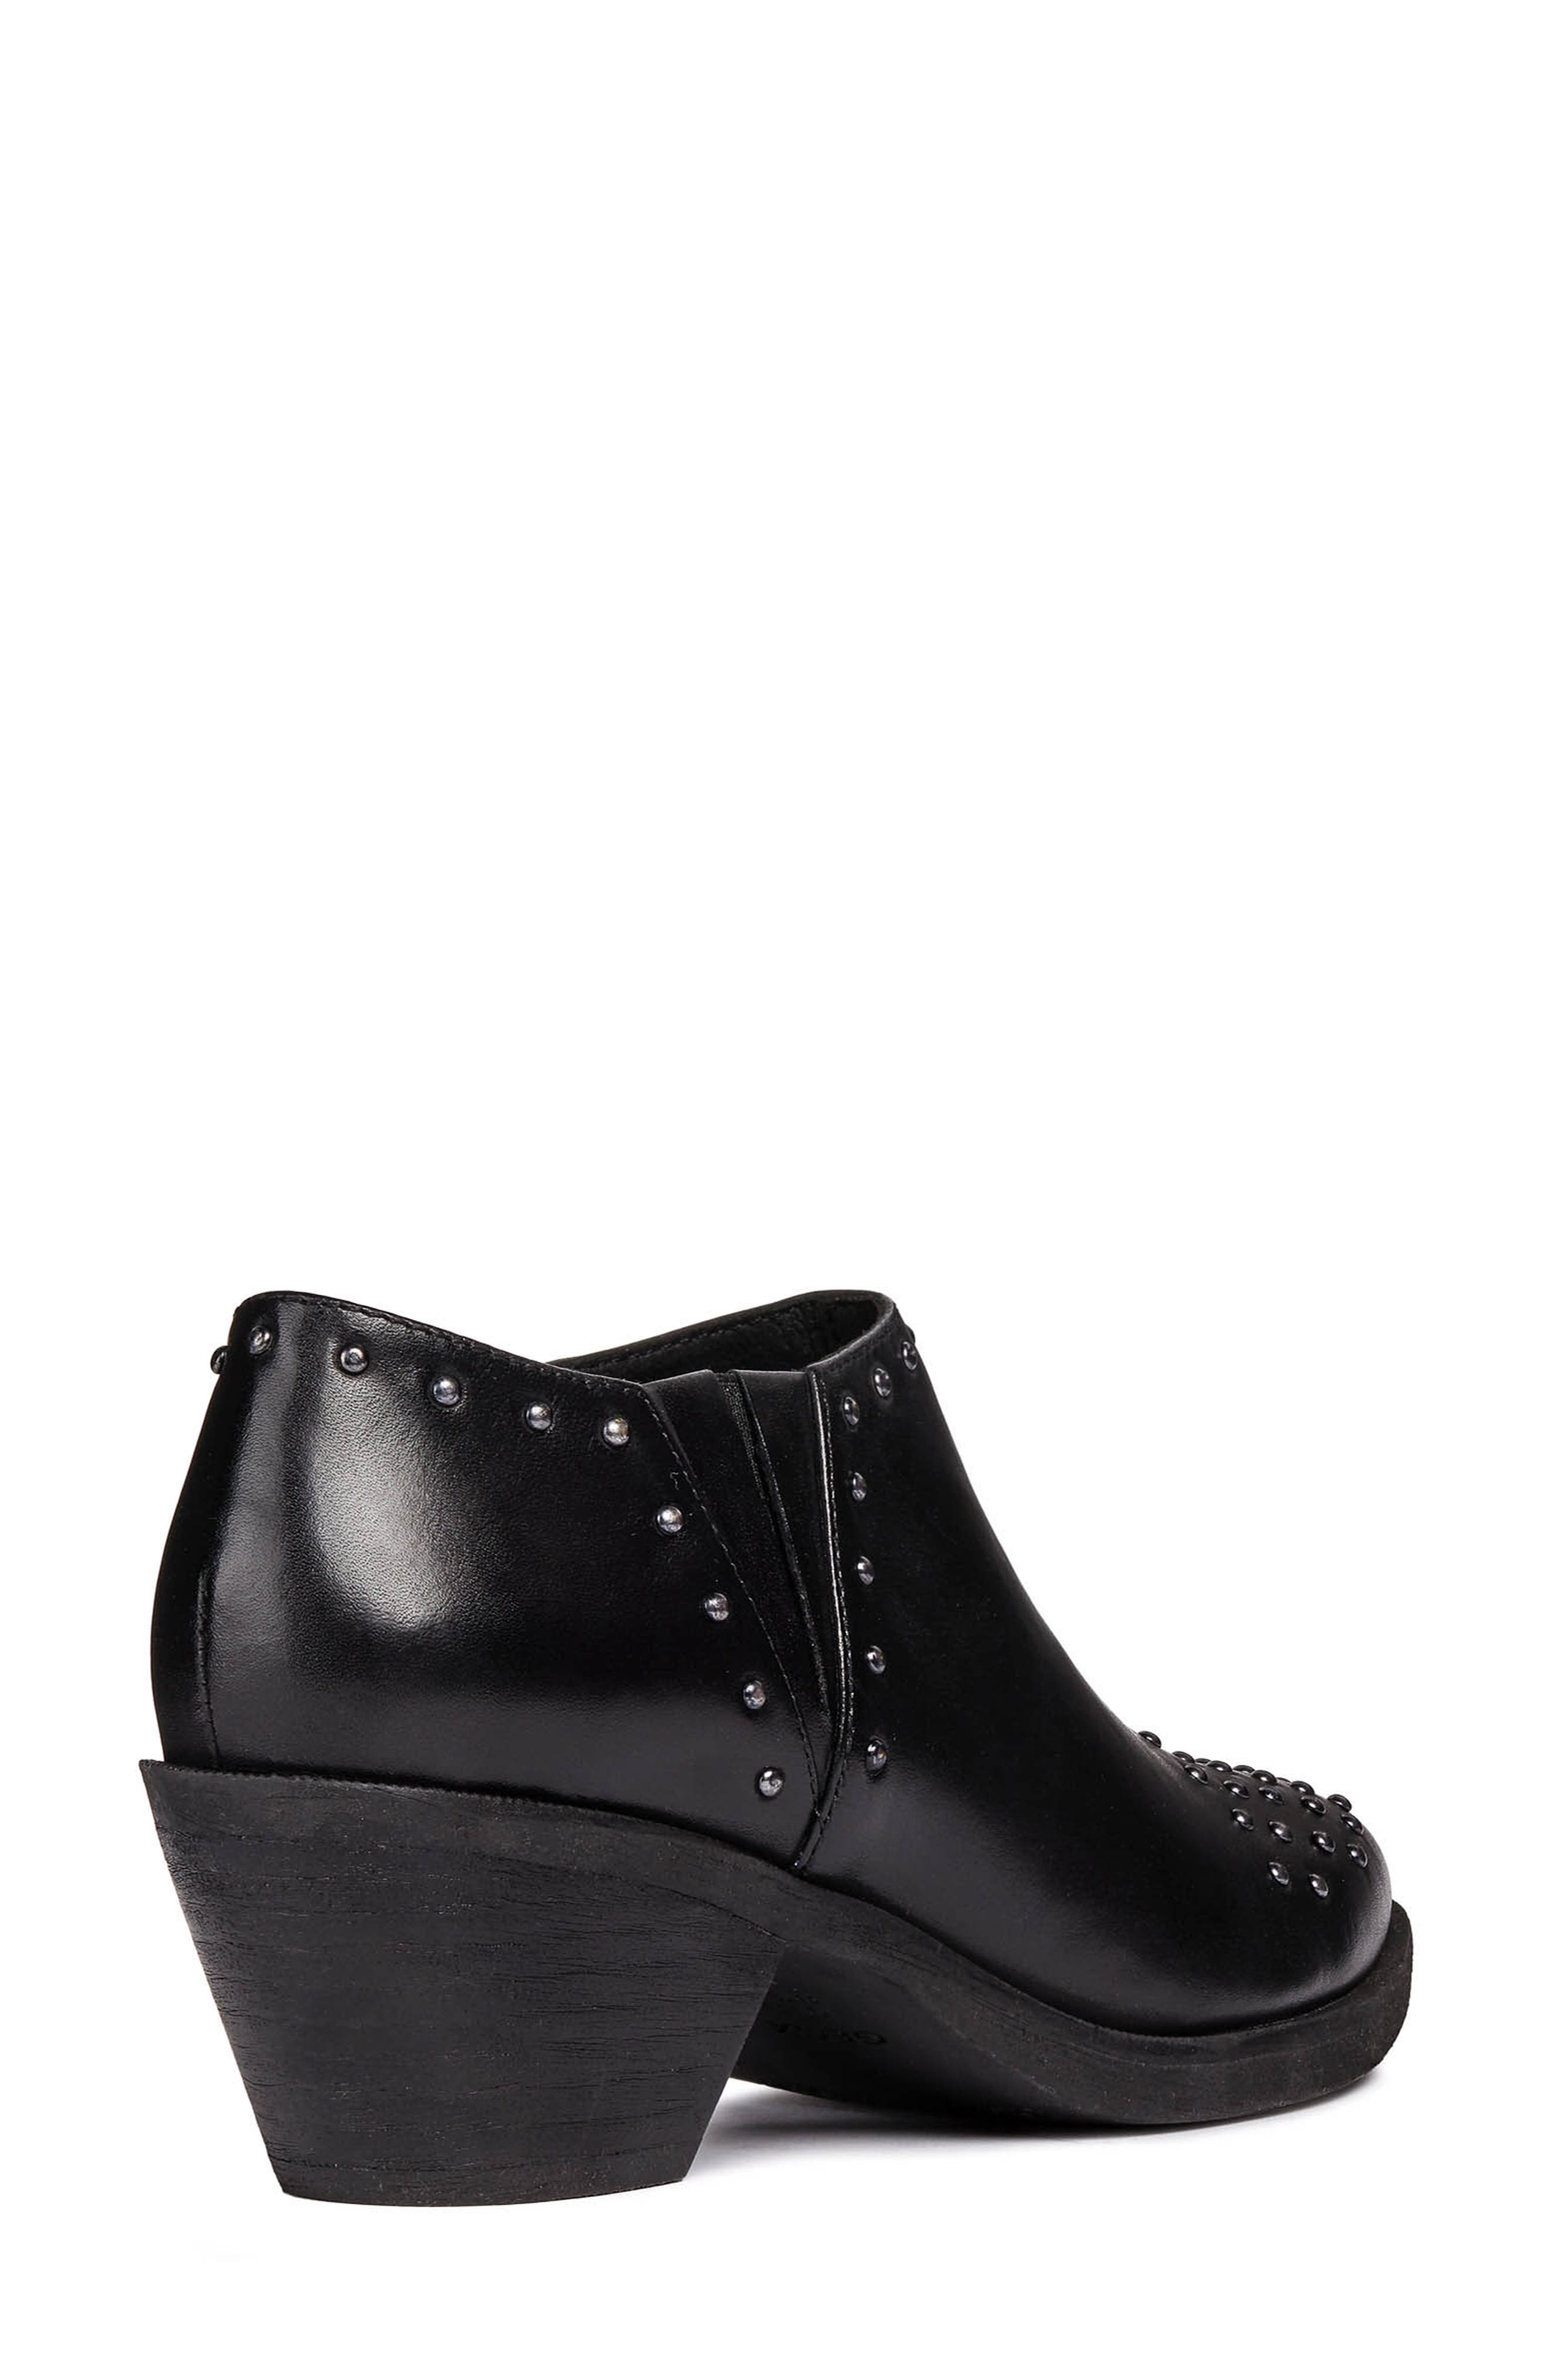 Lovai Ankle Boot,                             Alternate thumbnail 2, color,                             BLACK LEATHER